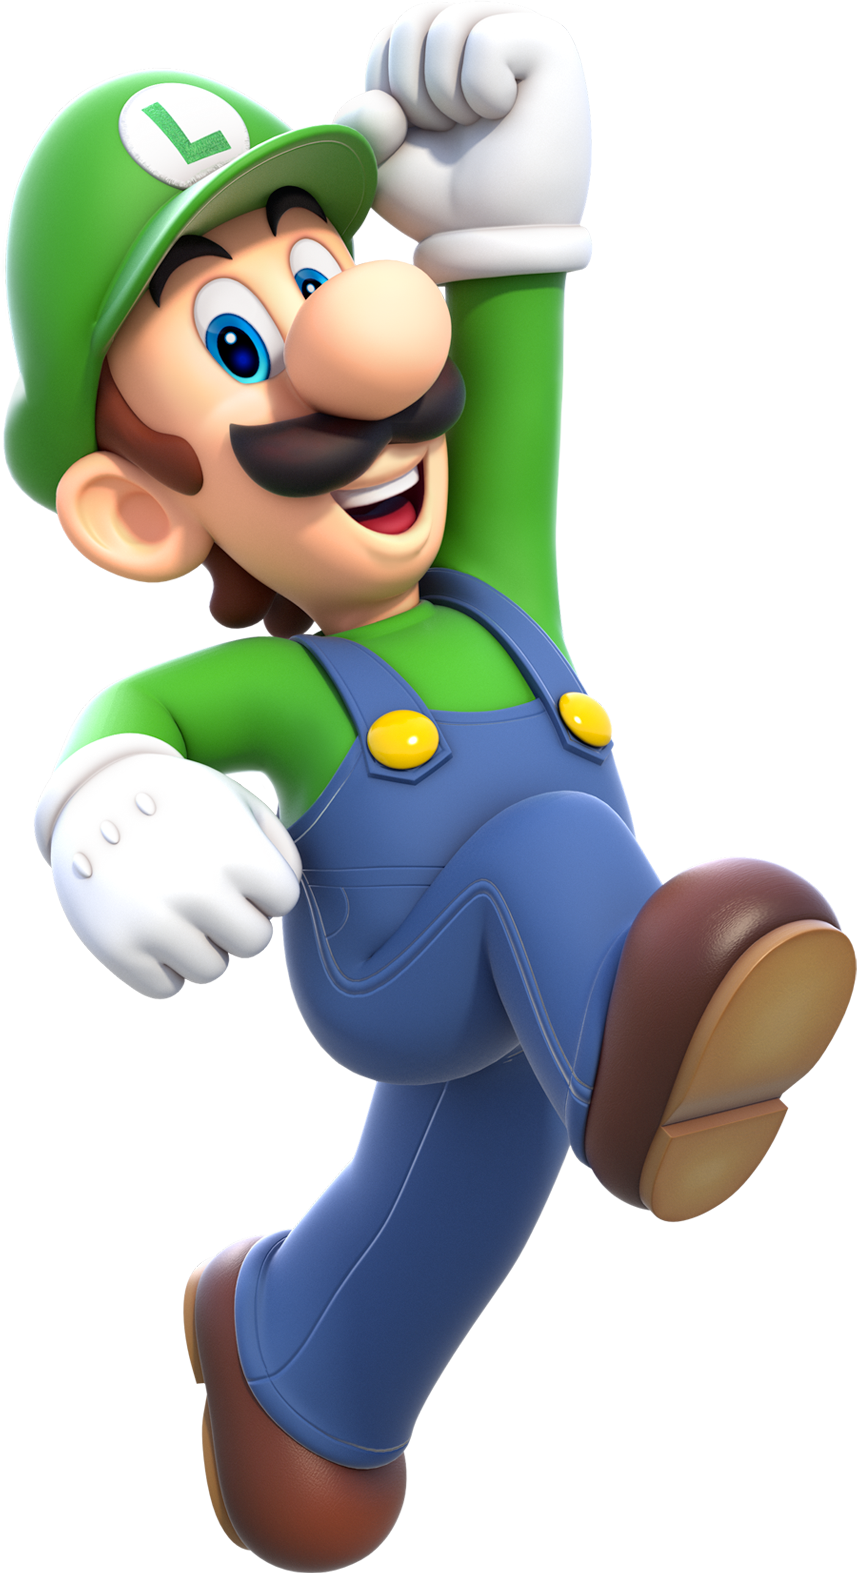 Here Is Some Hi Resolution Artwork For Super Mario 3d World For You To Use On Your Pers Super Mario And Luigi Super Mario Birthday Party Super Mario Bros Party